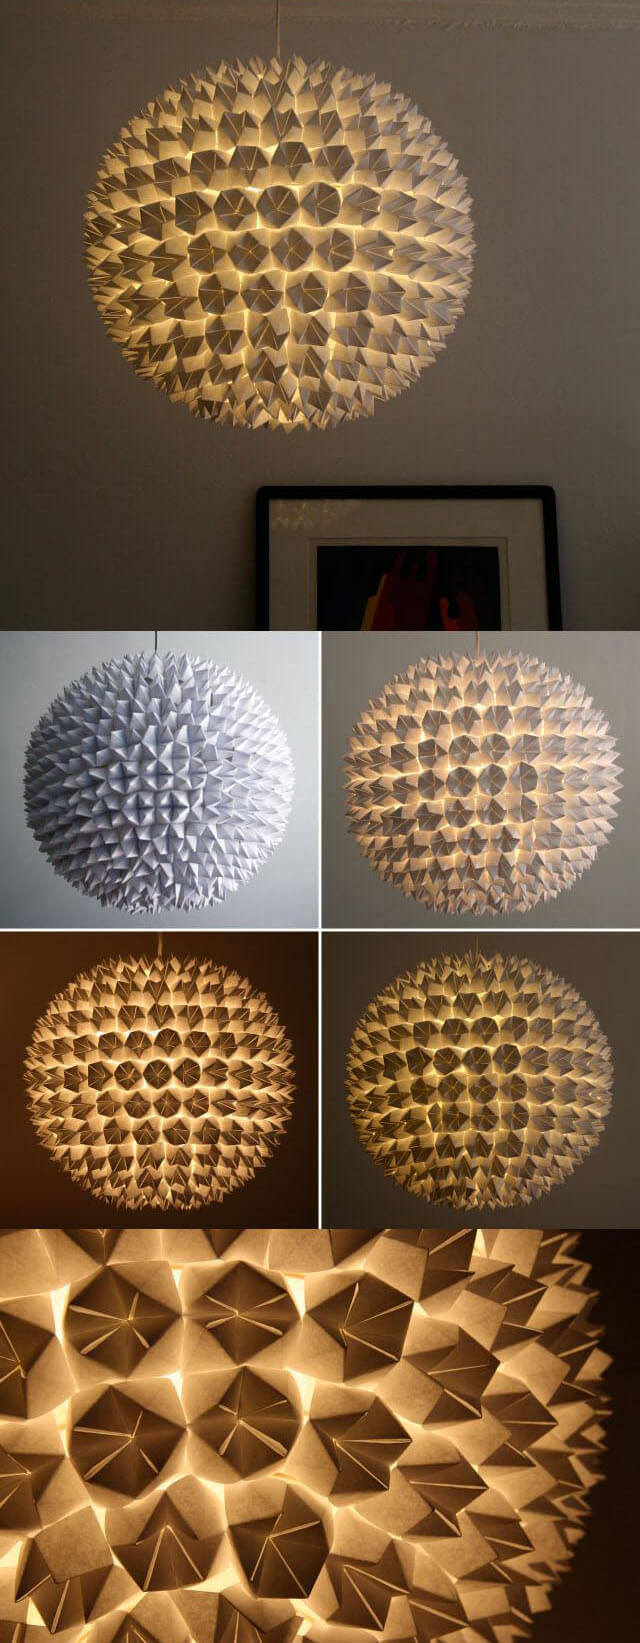 lighting diy. 18. Intricate Paper Burst Orb Lampshade Lighting Diy